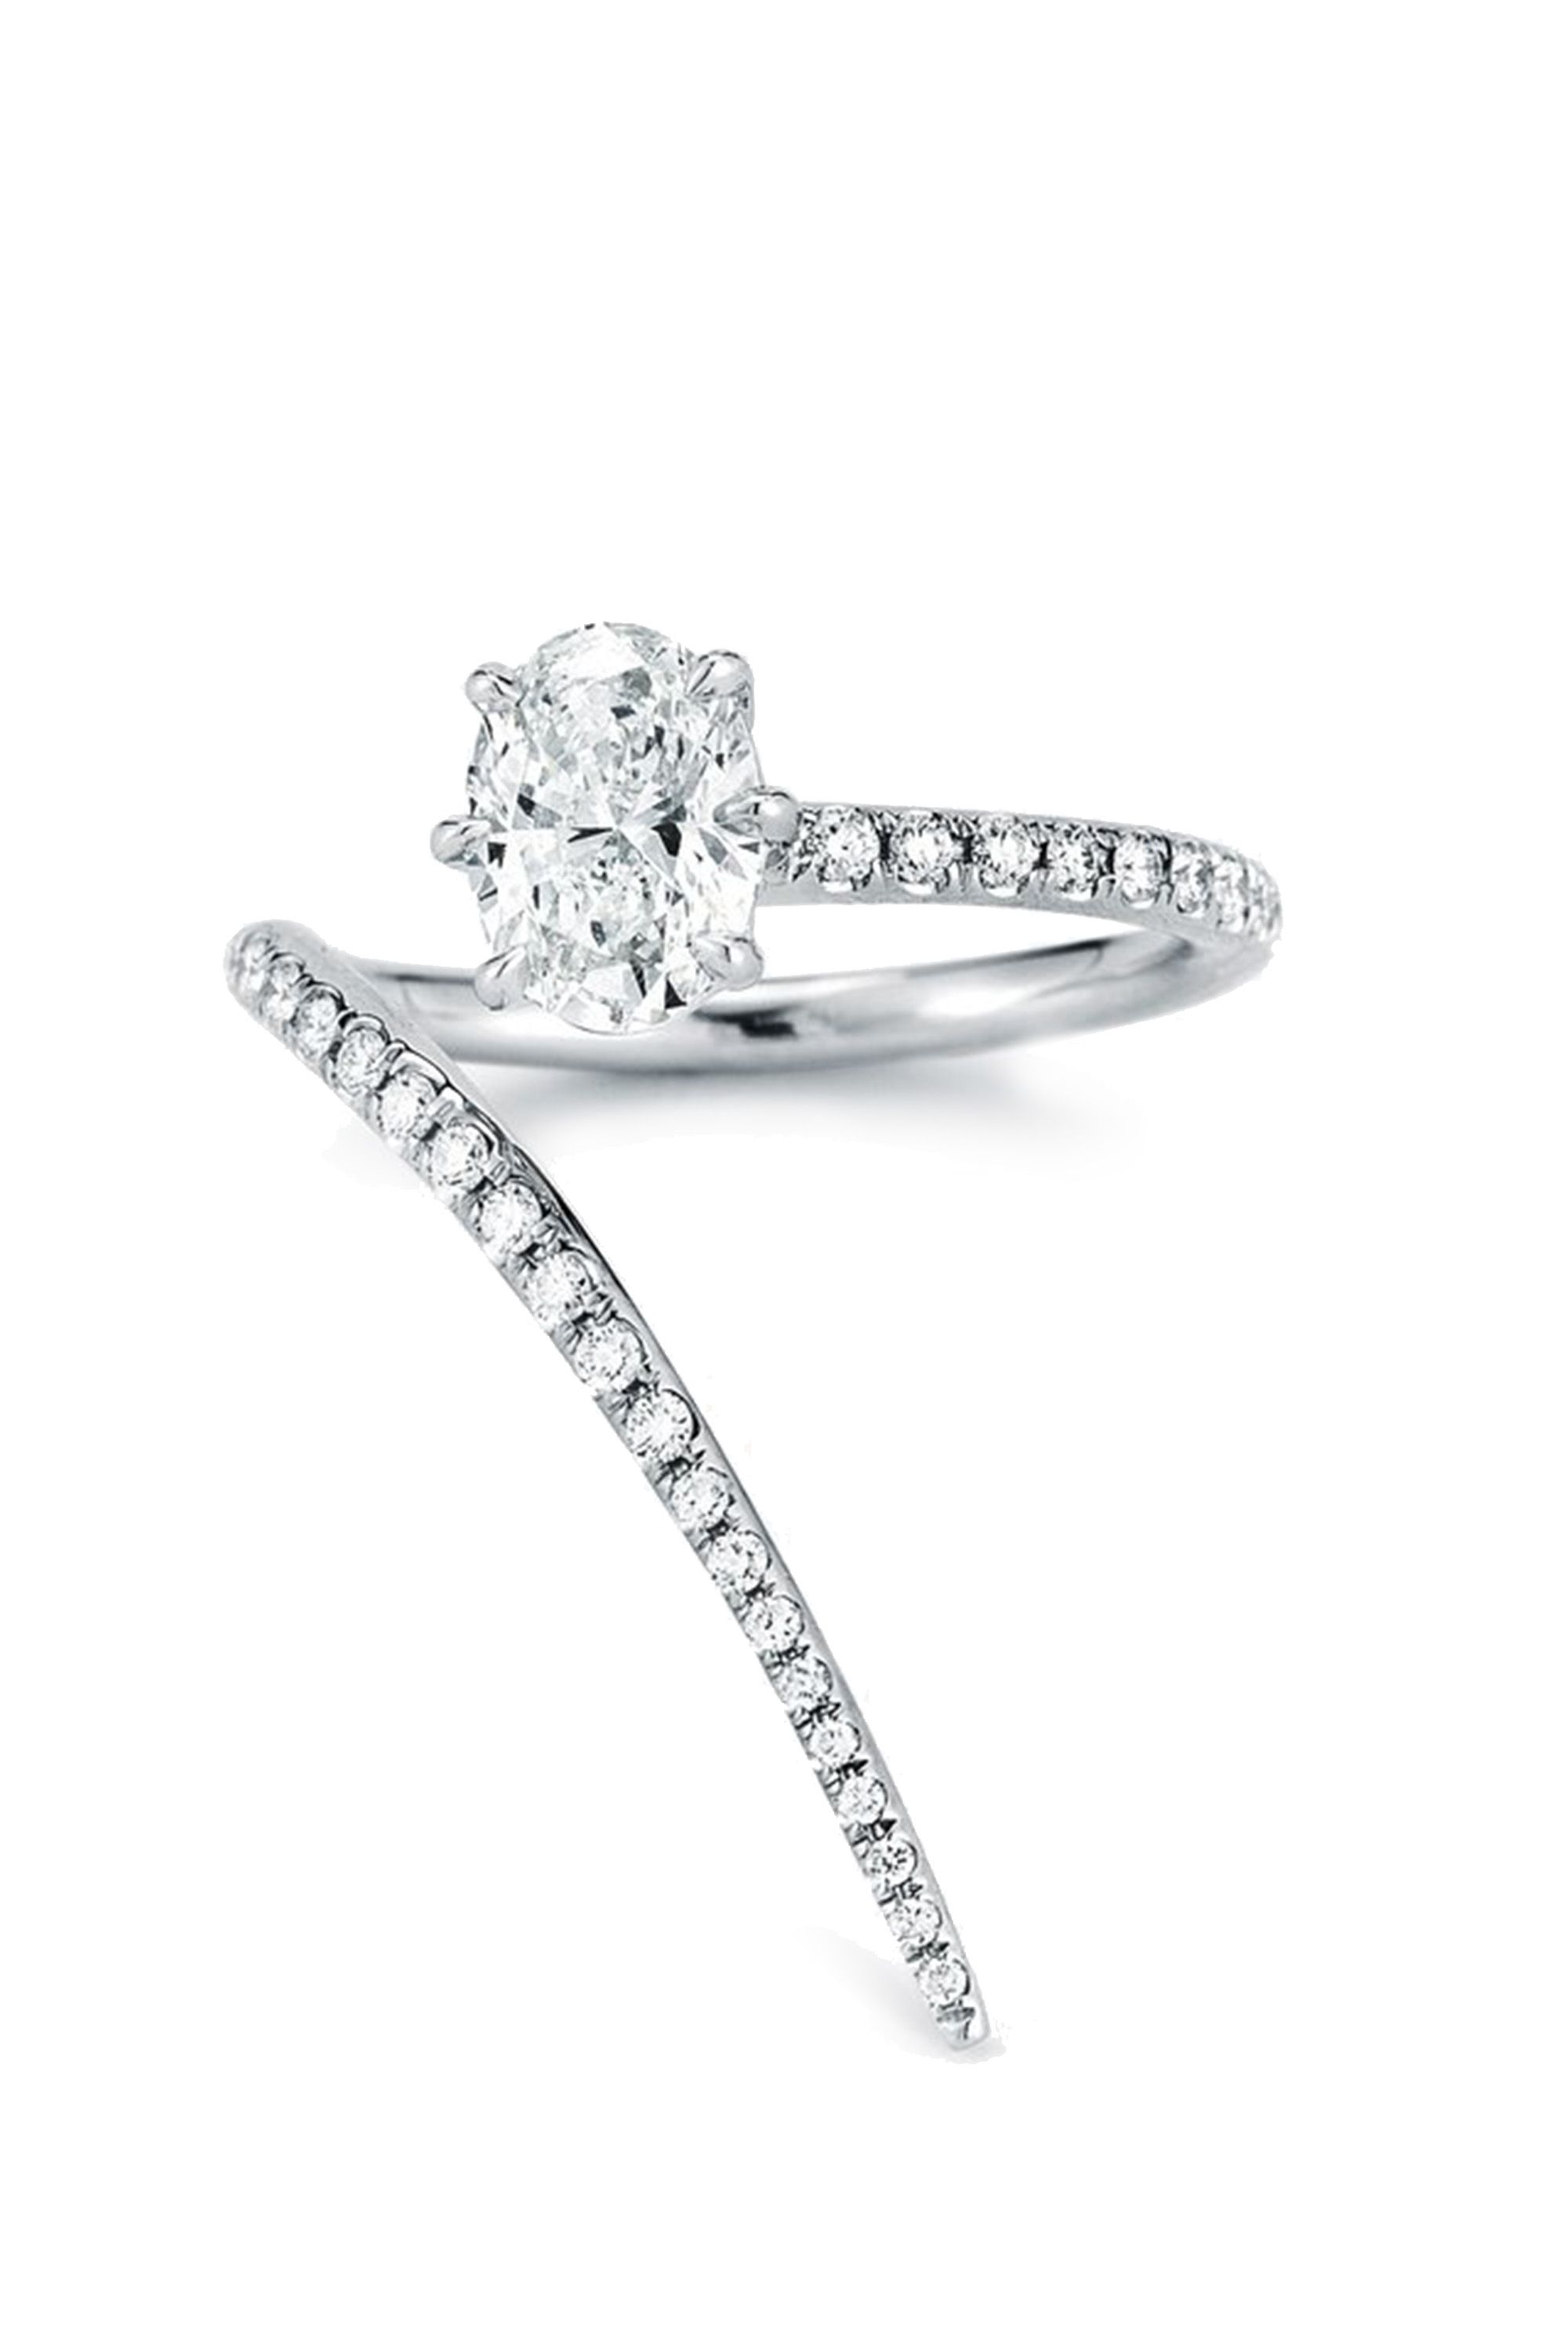 41 unique engagement rings beautiful non diamond and unusual engagement rings - Non Diamond Wedding Rings